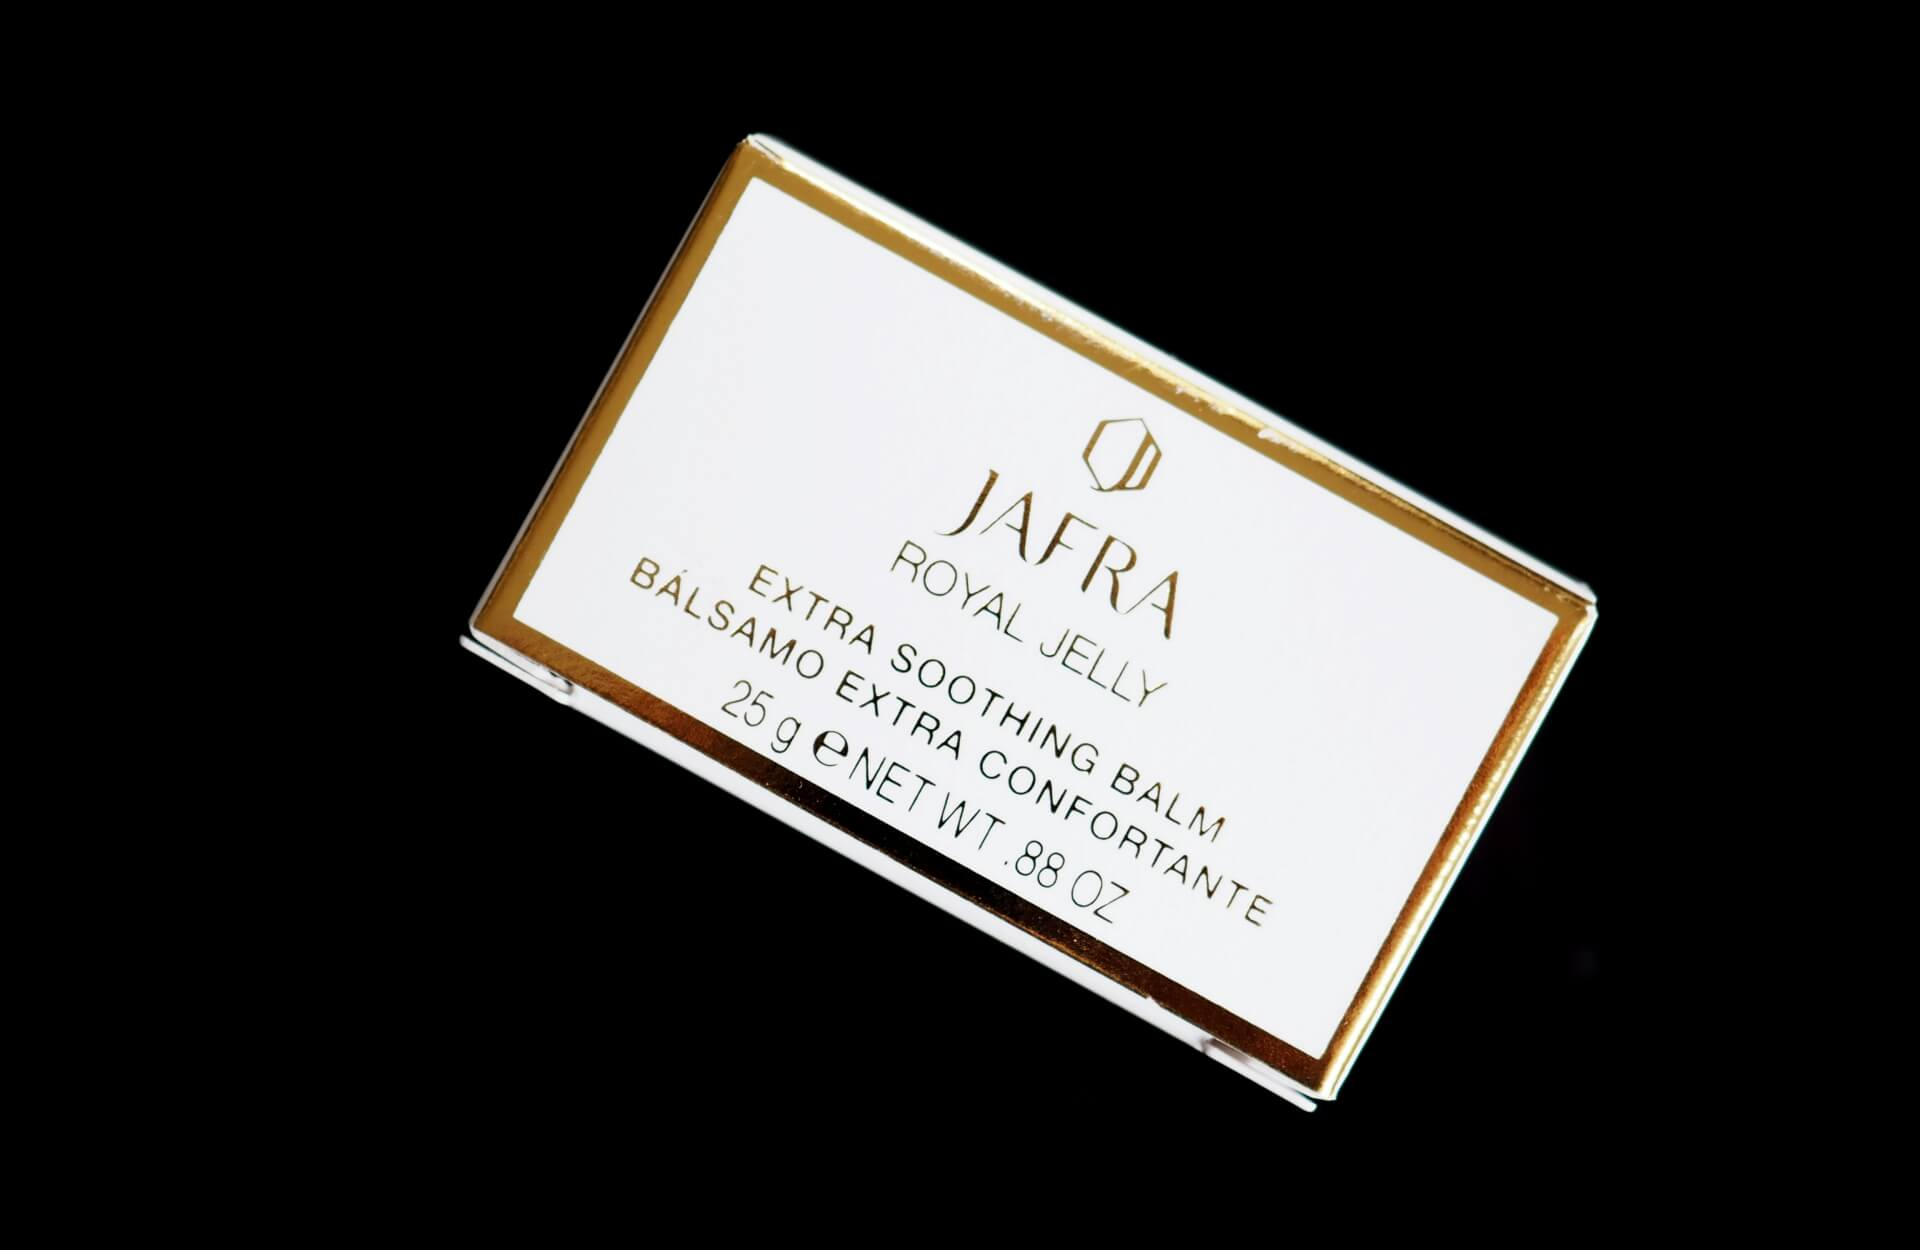 Jafra Royal Jelly Extra Smoothing Balm